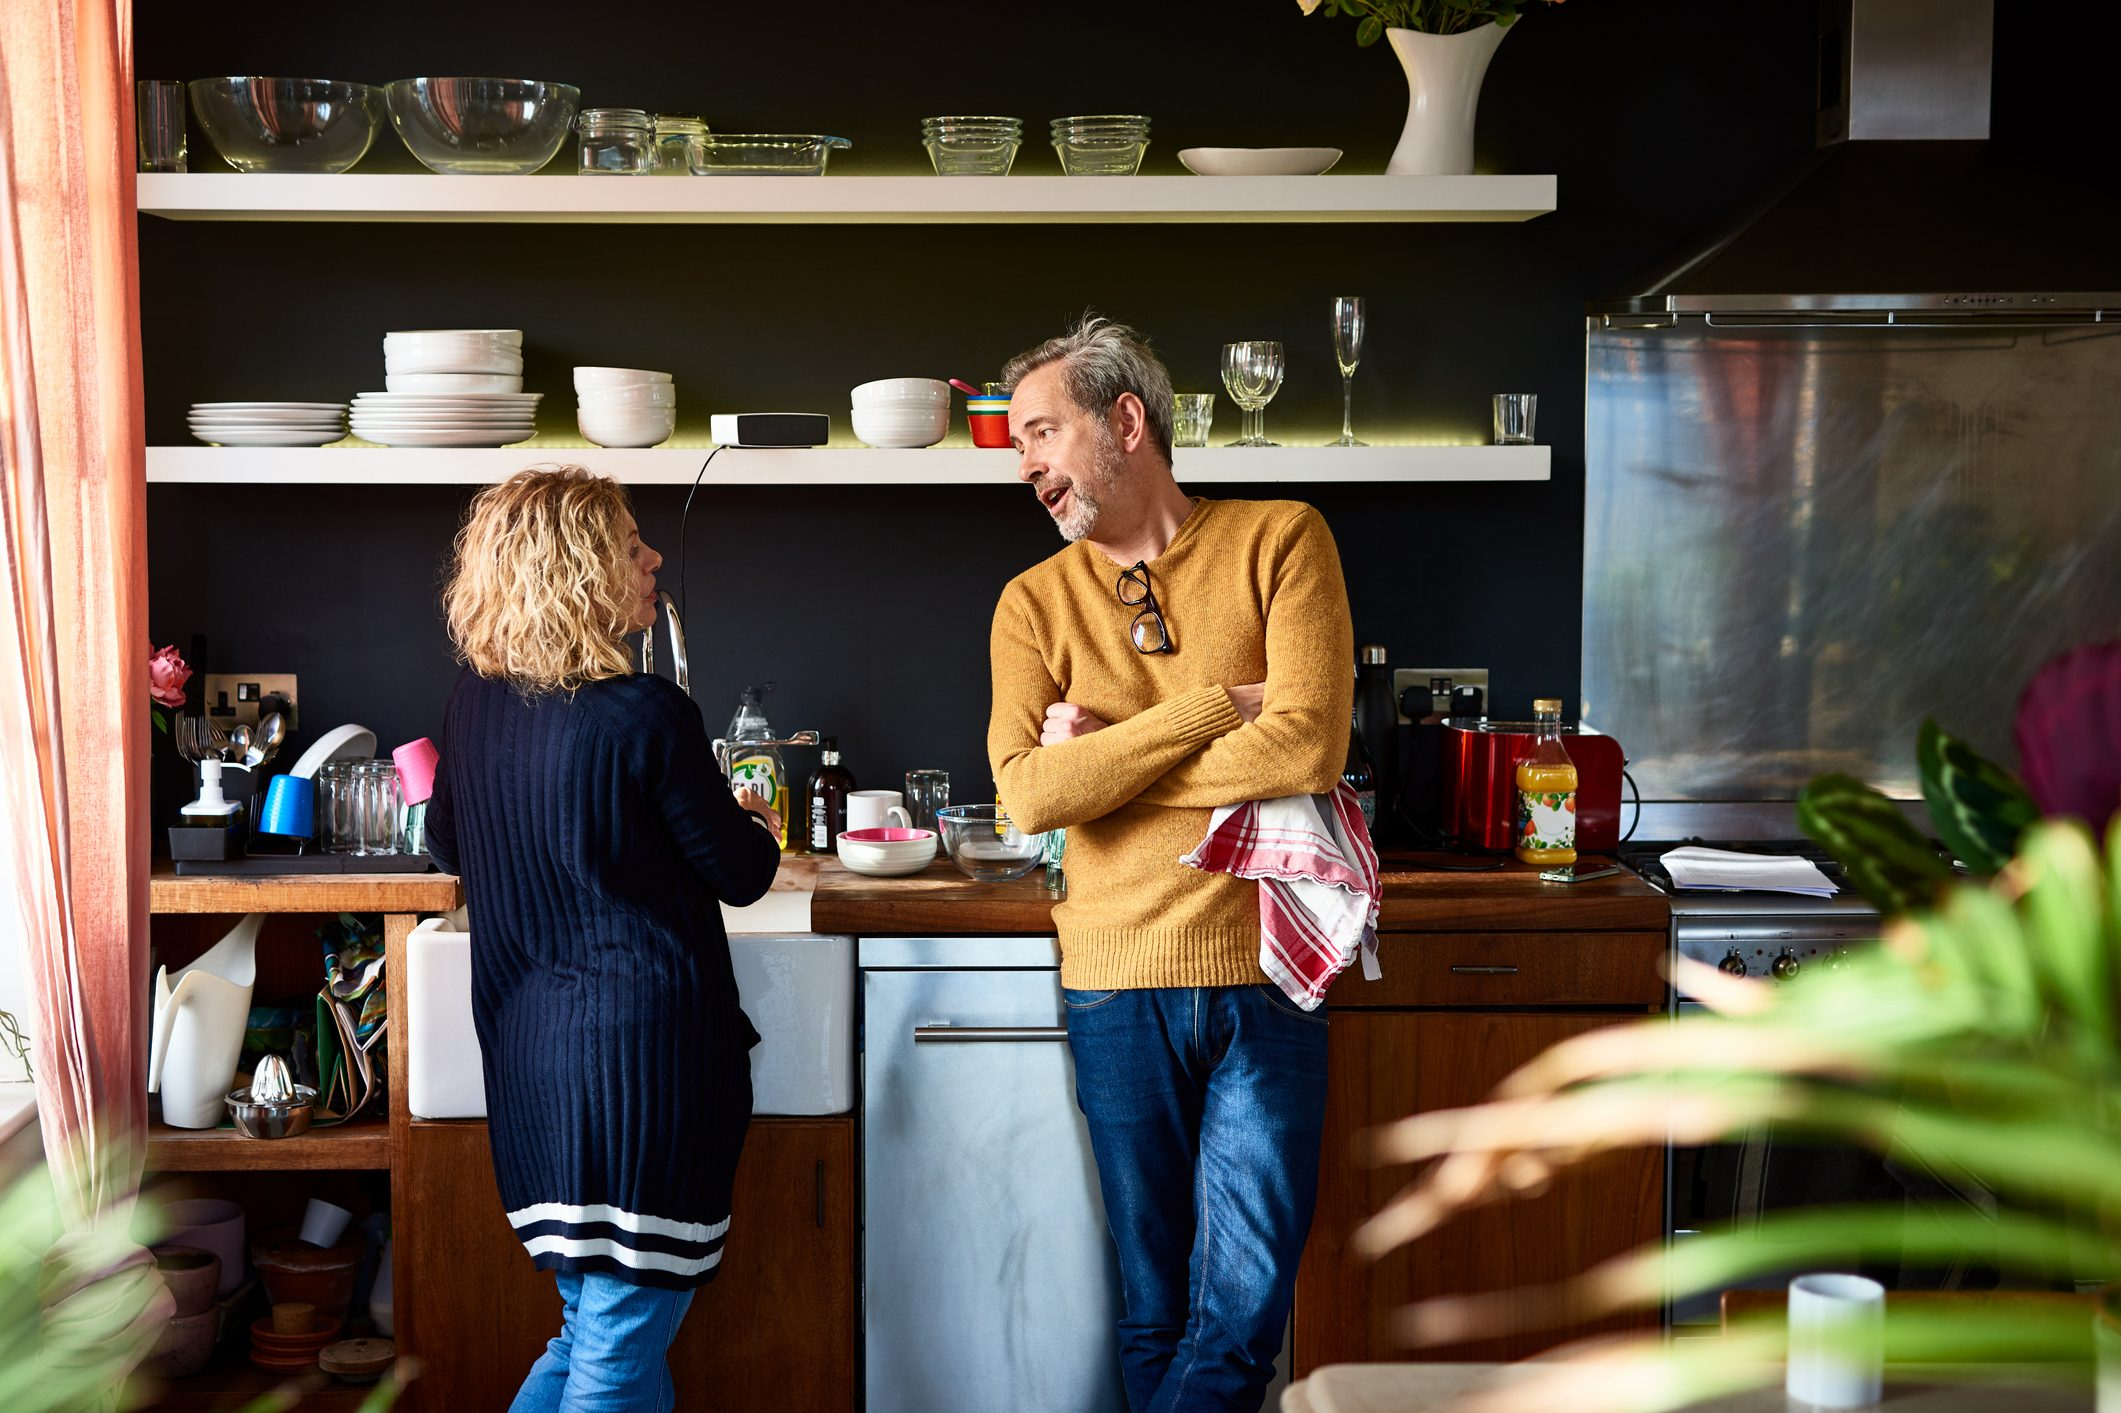 mature couple having a conversation in the kitchen